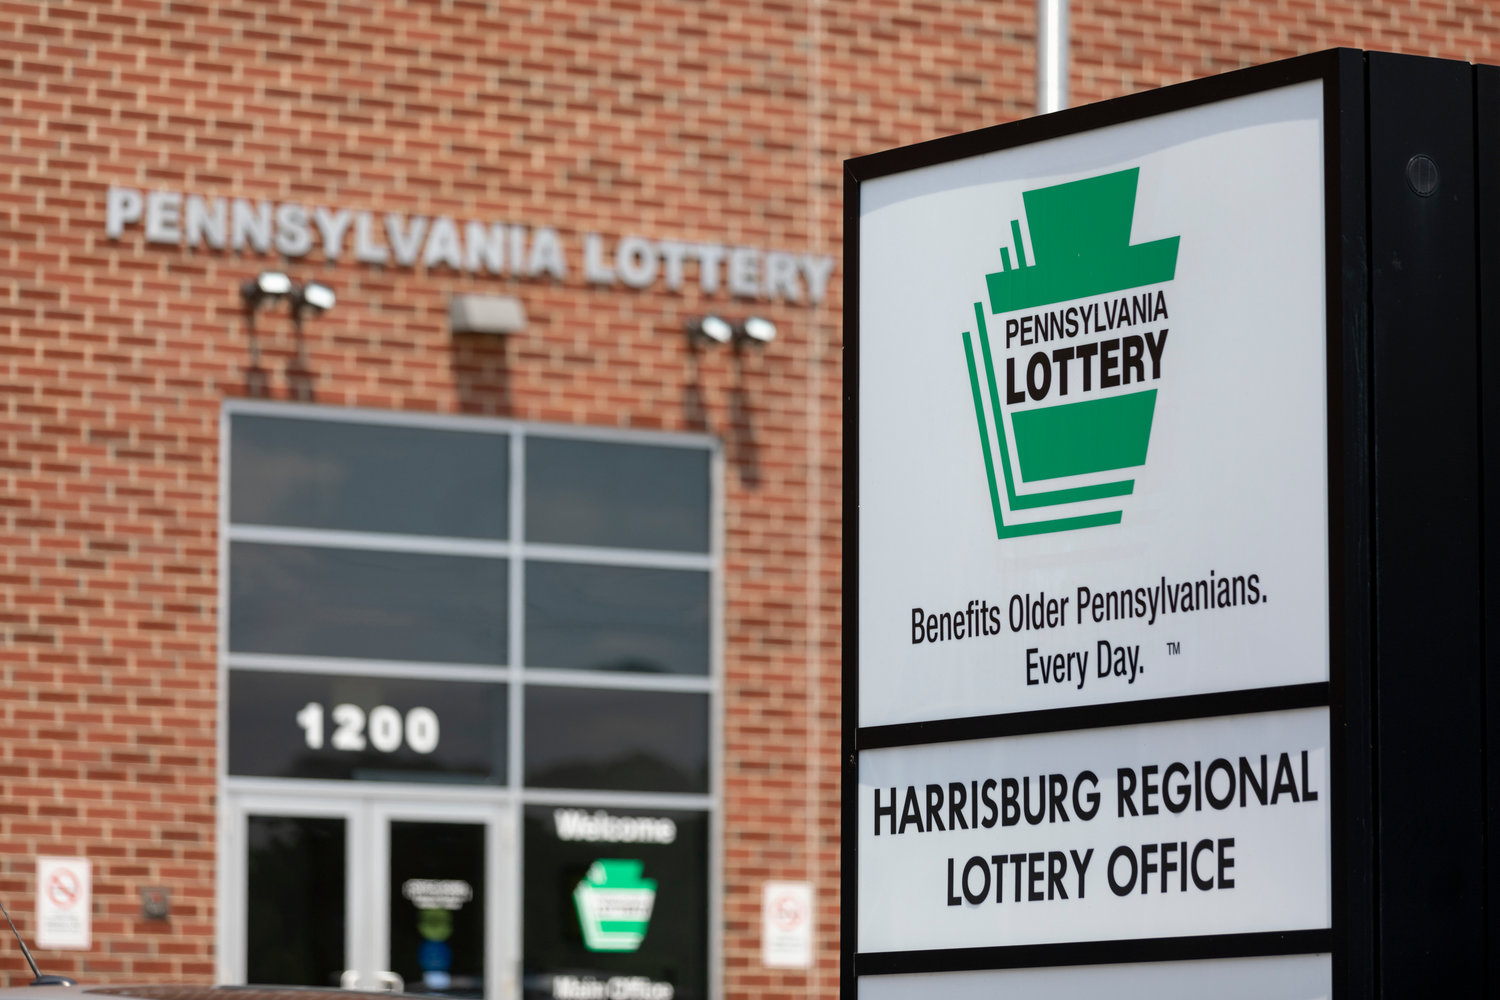 Pennsylvania Lottery does record $4 5 billion in sales in